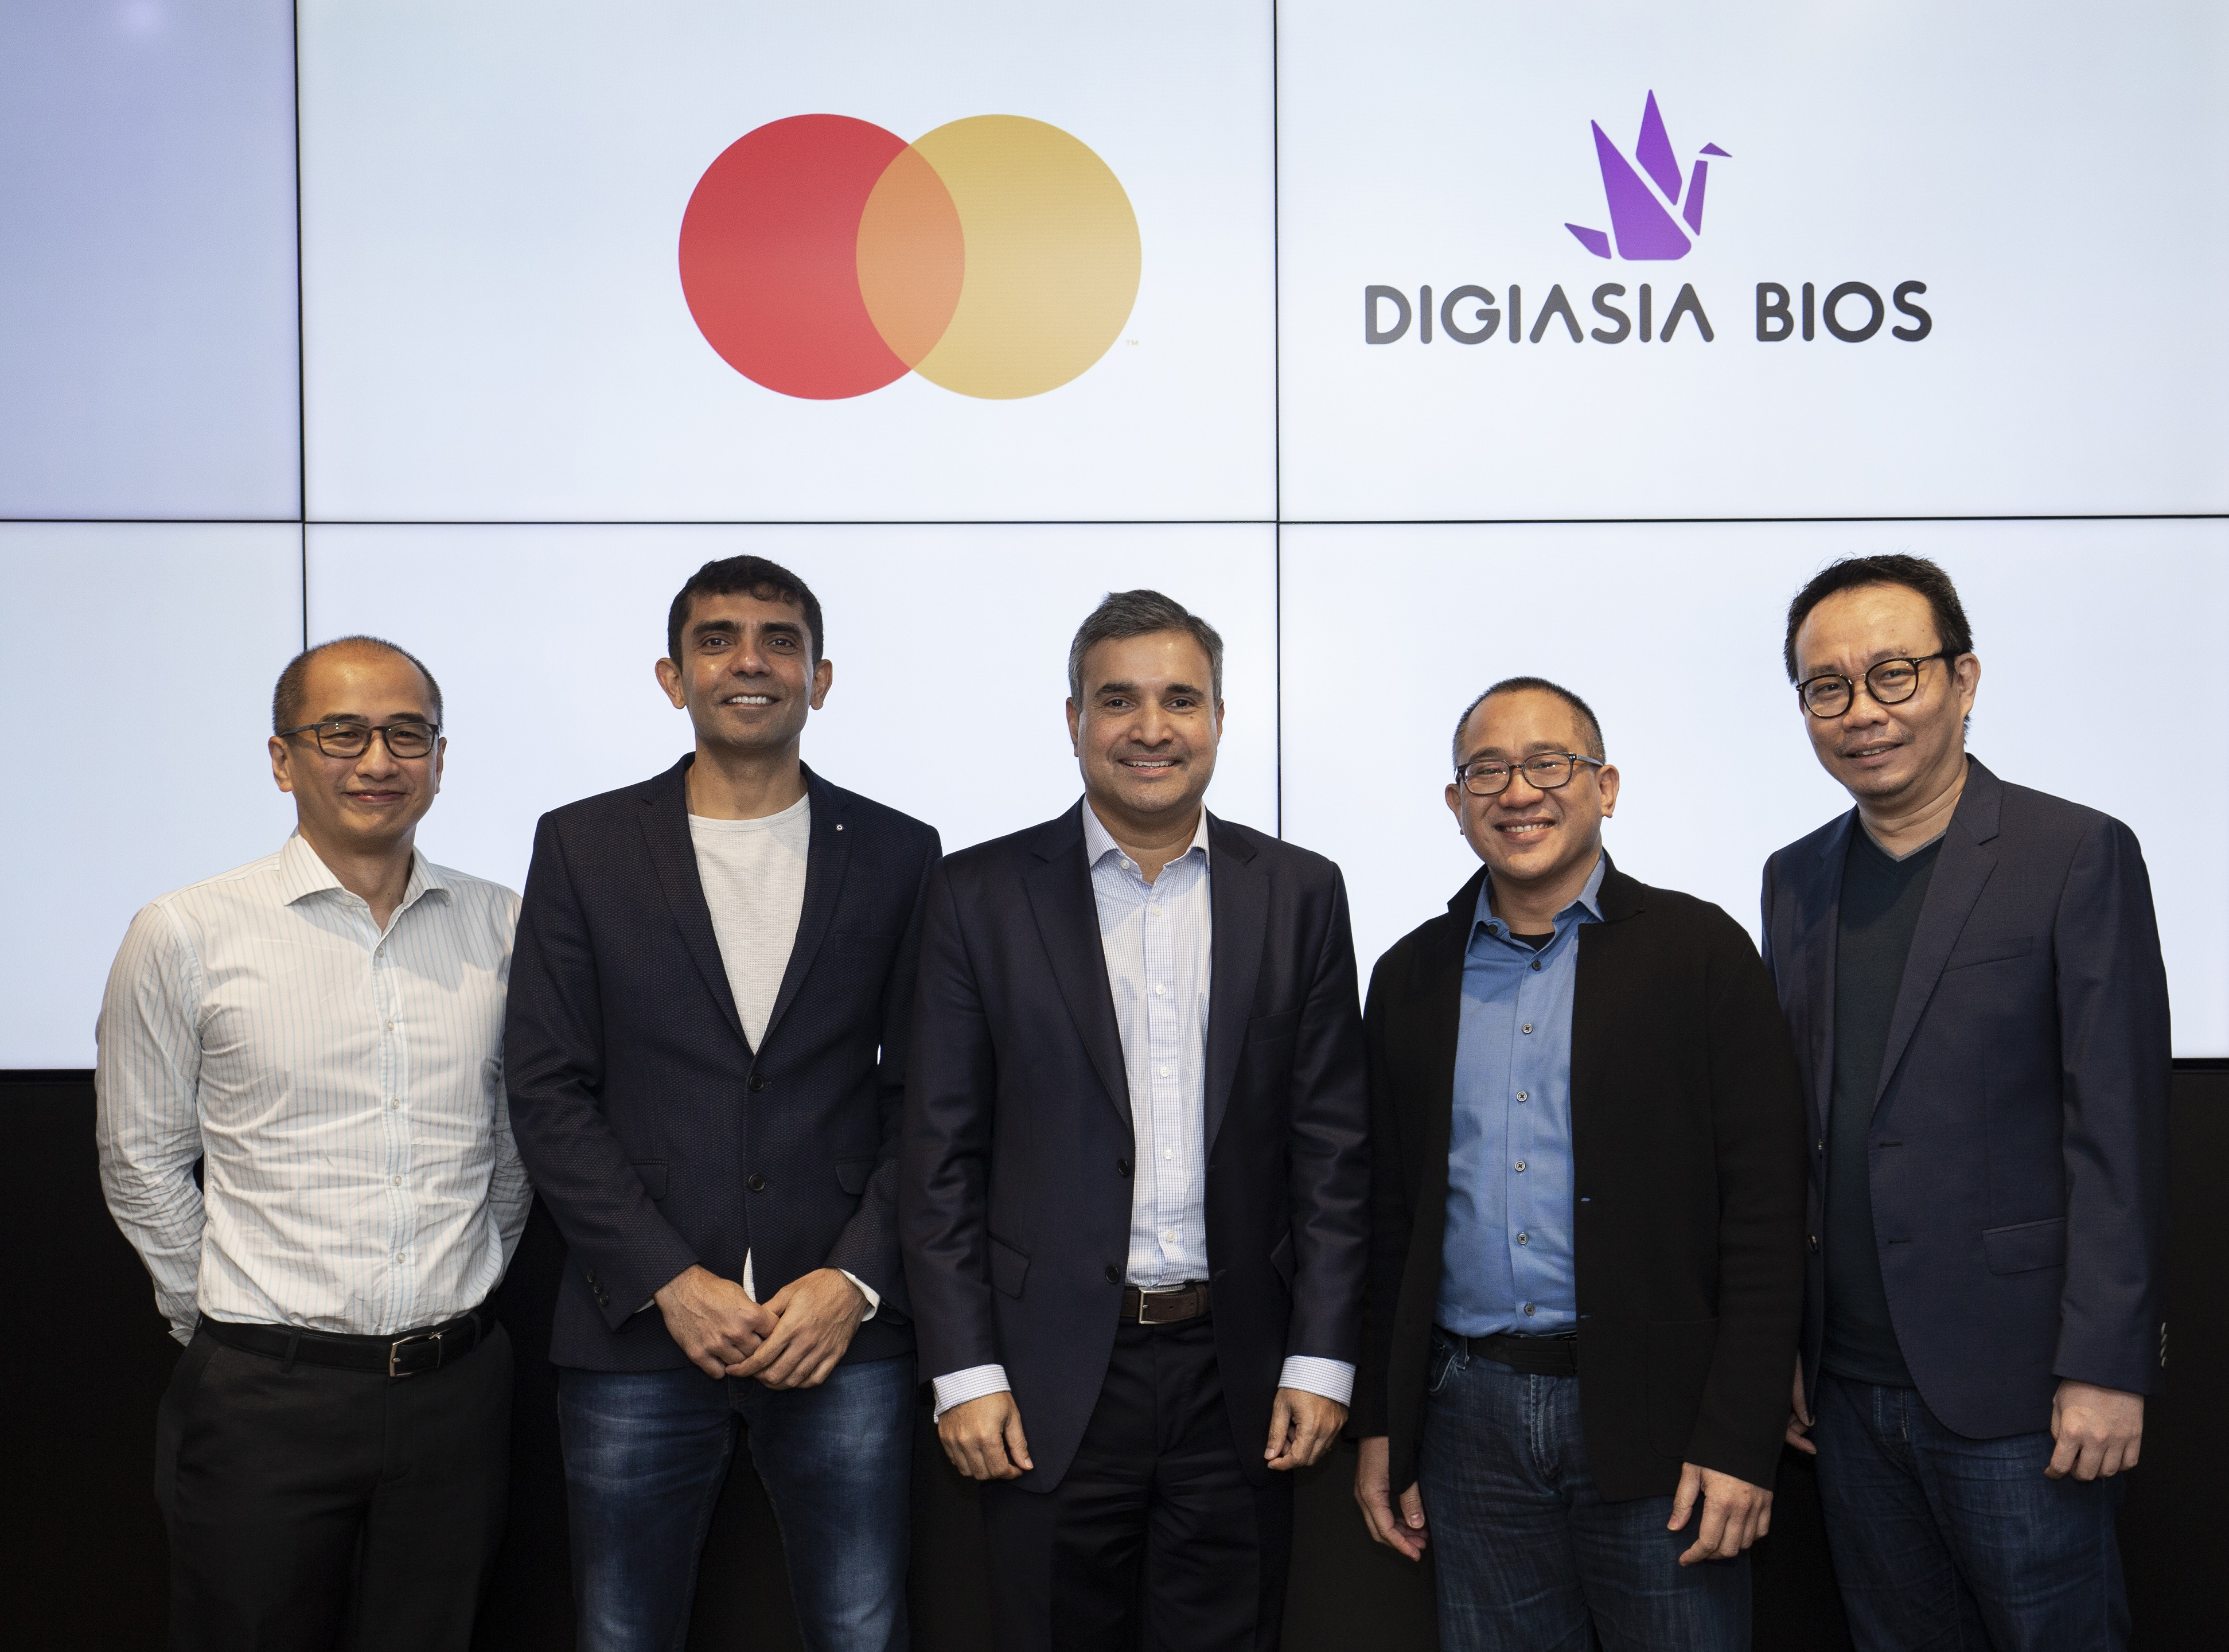 From left to right : Chuah Teong Lee (General Counsel, Asia Pacific, Mastercard), Prashant Gokran (Co-Founder, Digiasia Bios), Ari Sarker (Co-President, Asia Pacific, Mastercard), Alexander Rusli (Co-Founder, Digiasia Bios), and Hendra Widjaja (Advisor, Digiasia Bios)